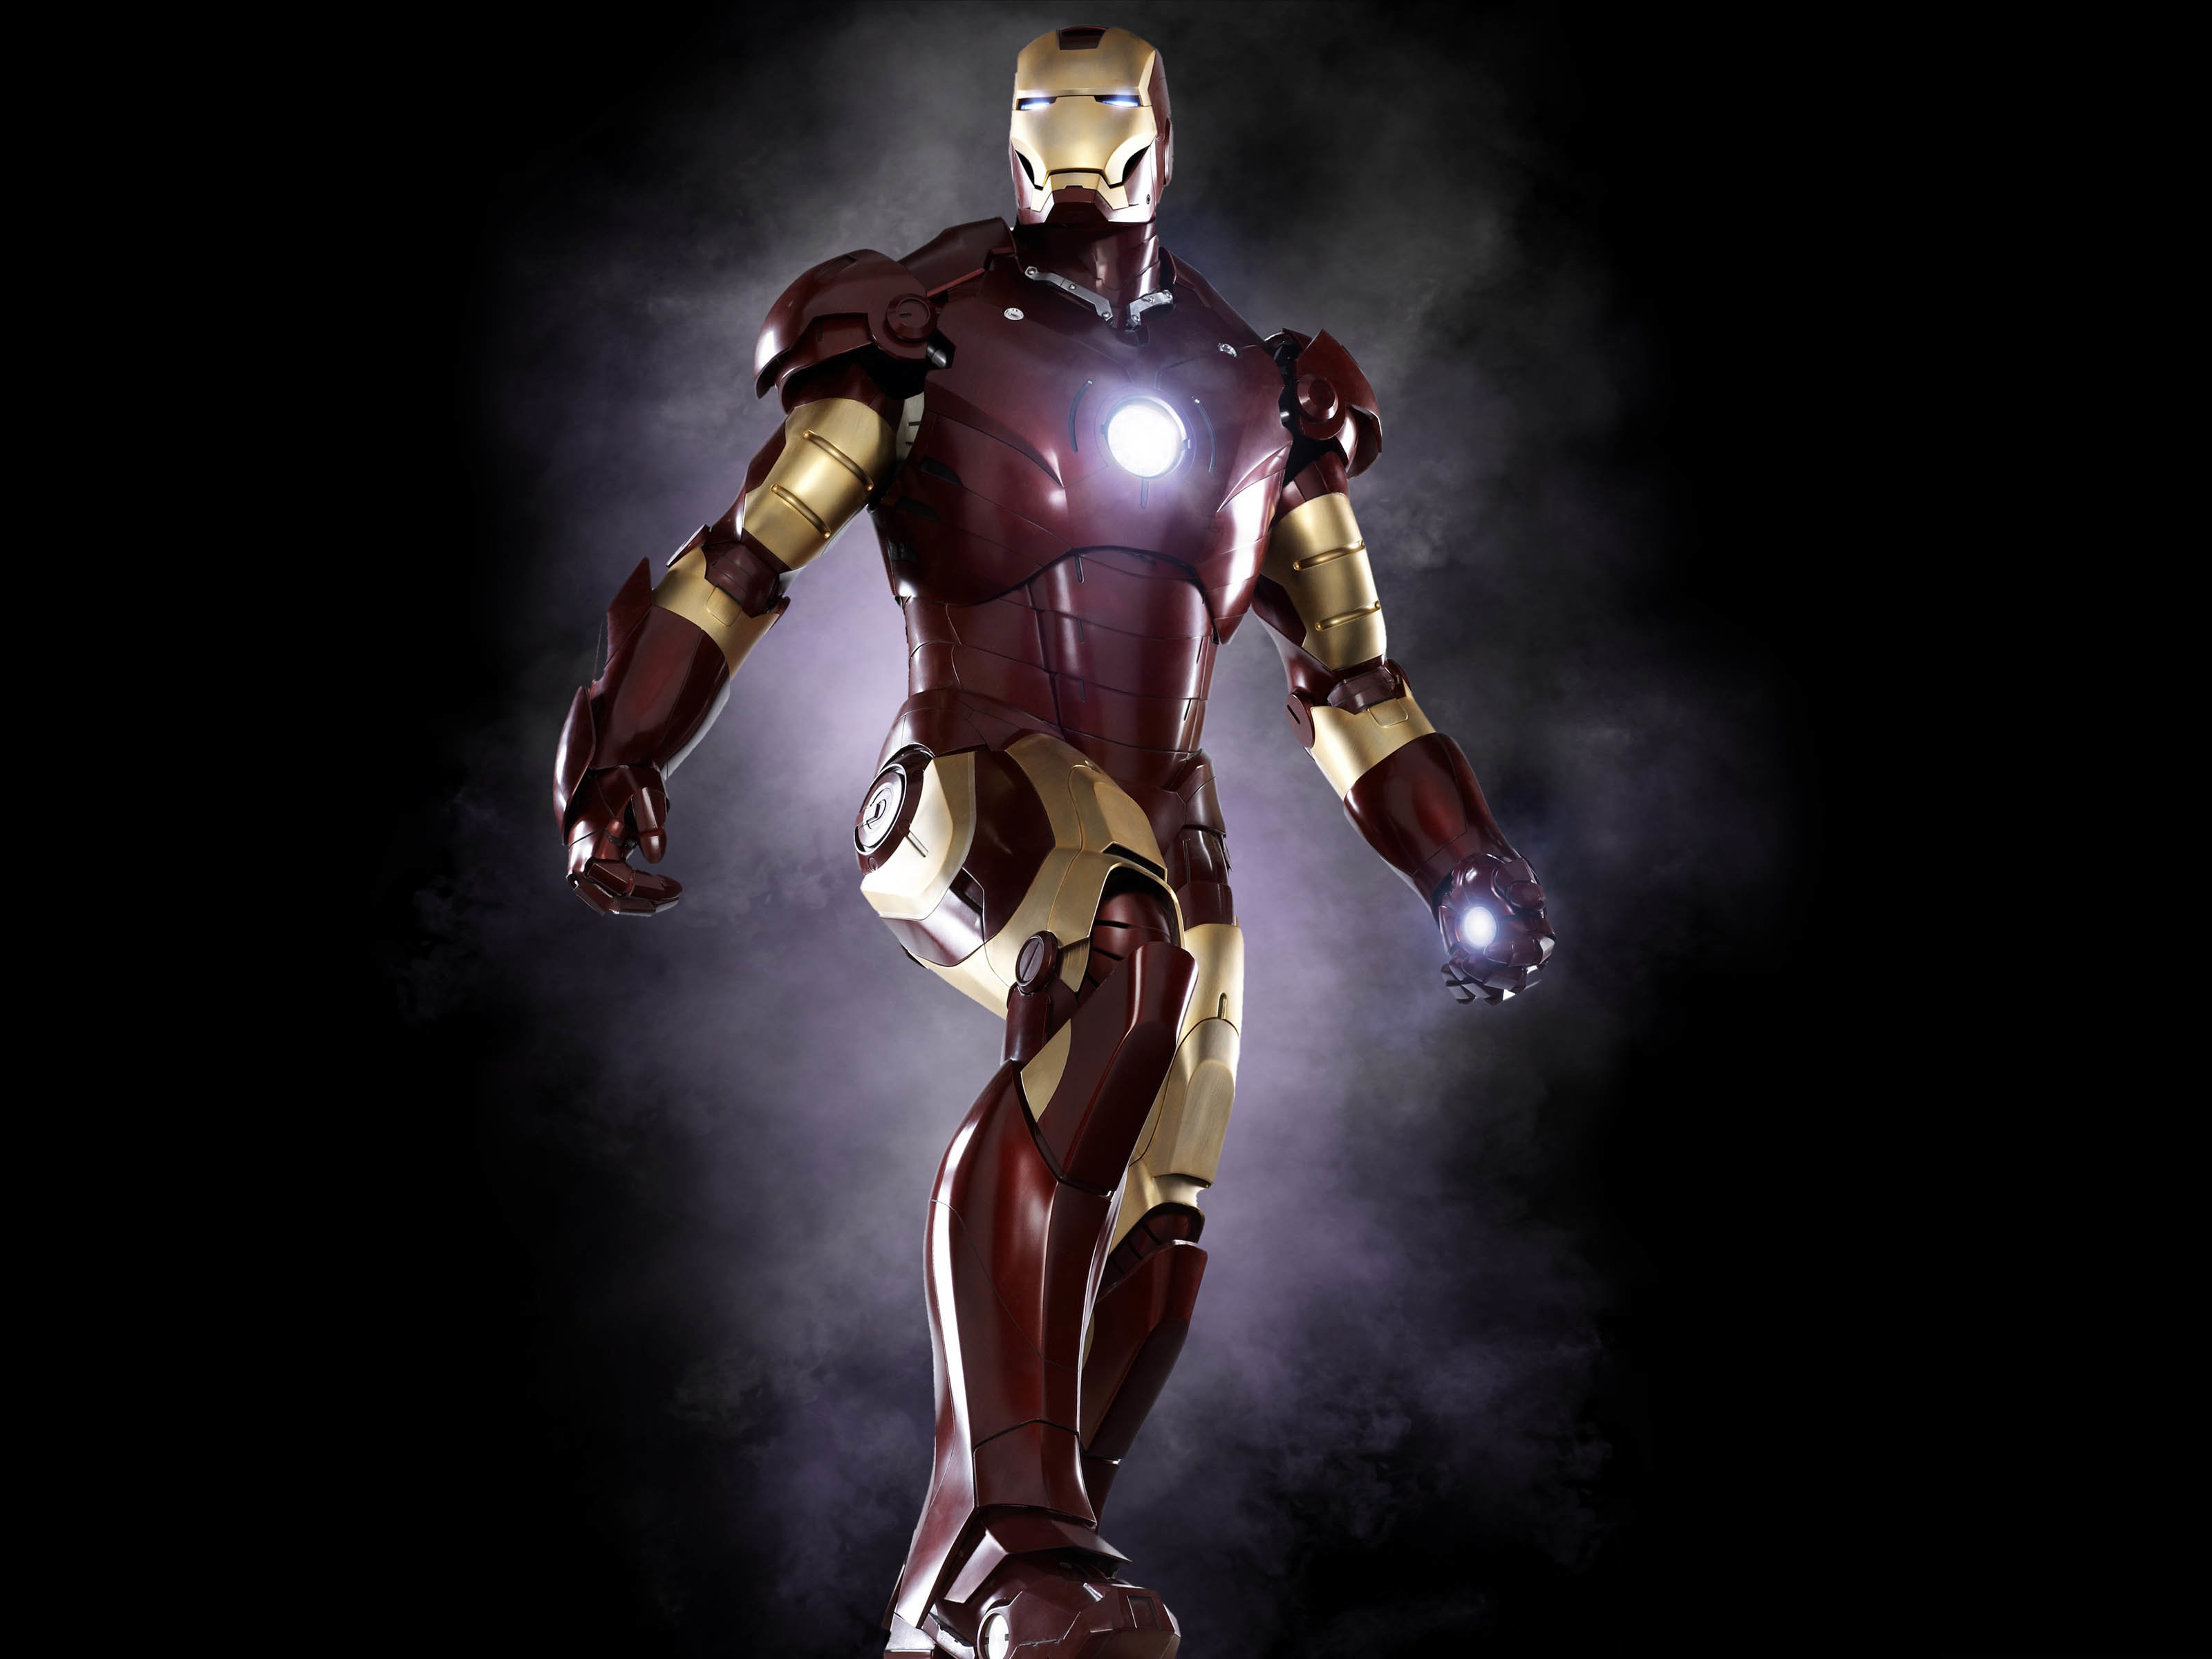 Download Hd 3200x2400 Iron Man 3 Computer Wallpaper ID400966 For Free